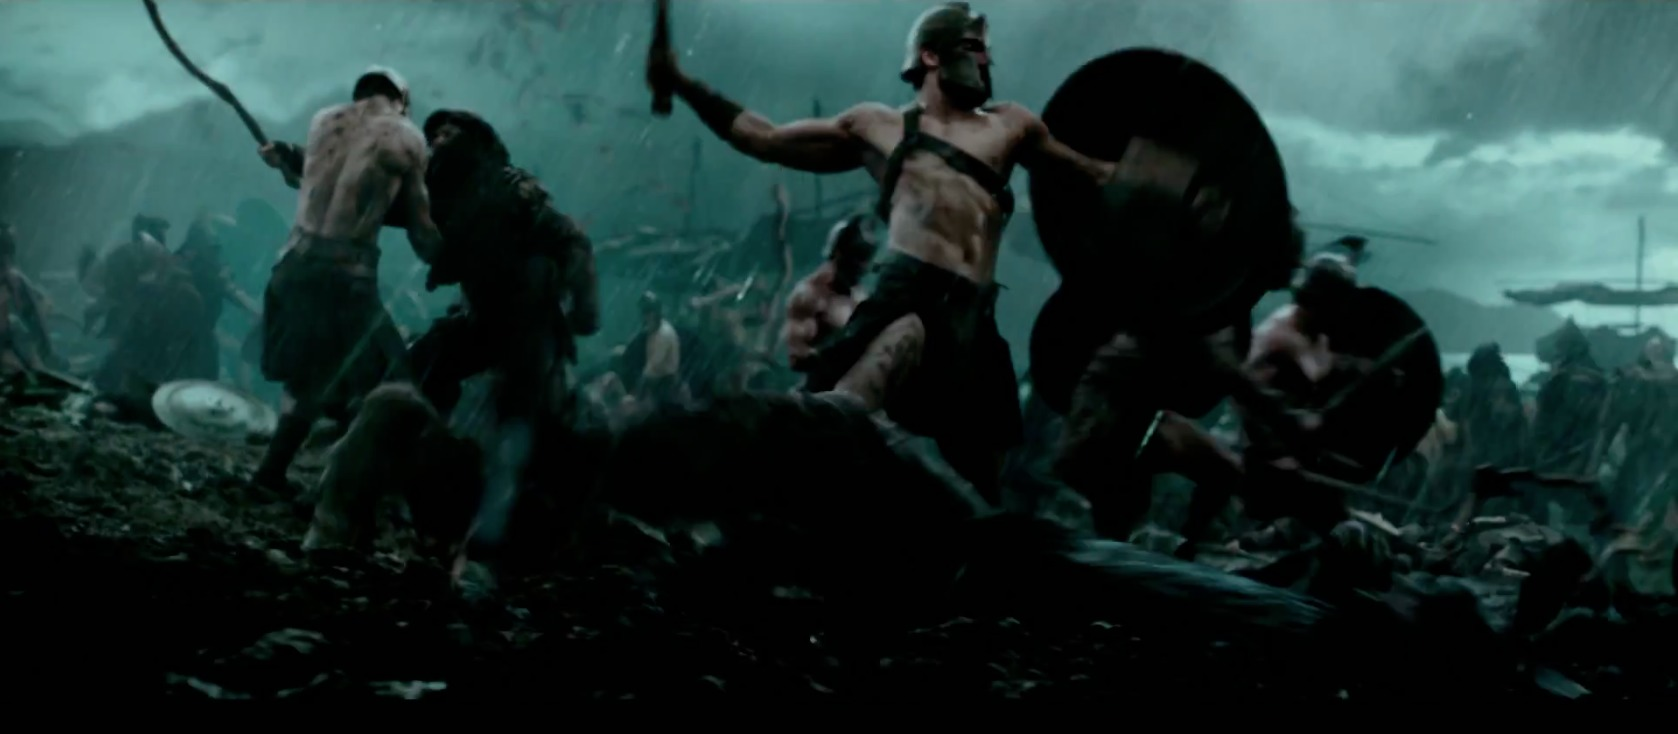 Eric Linden in 300: Rise of an Empire